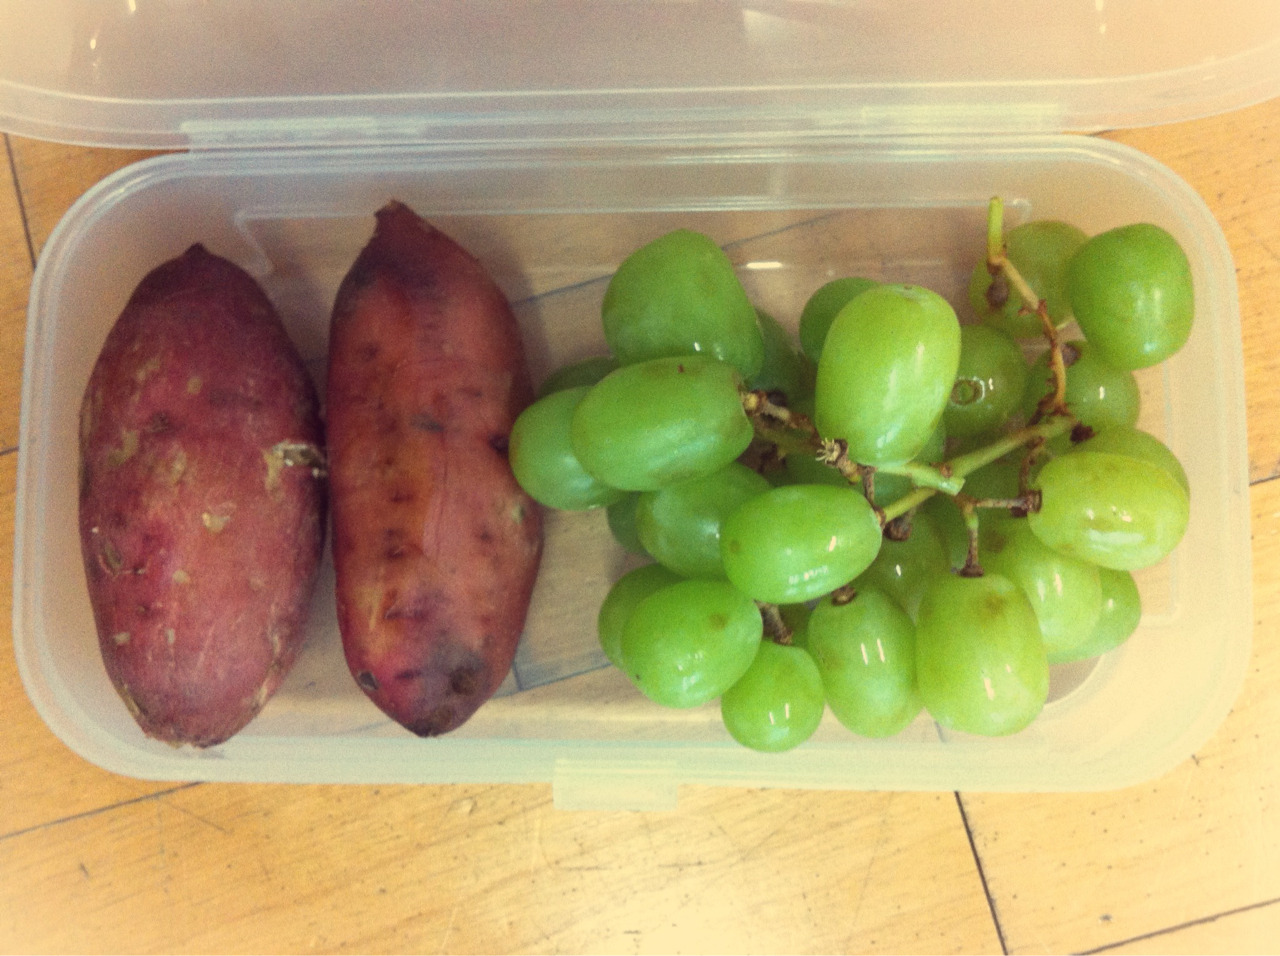 Dinner Pack : steamed sweet potatoes and green grapes. Sweet potato is one of my favorite vegetable